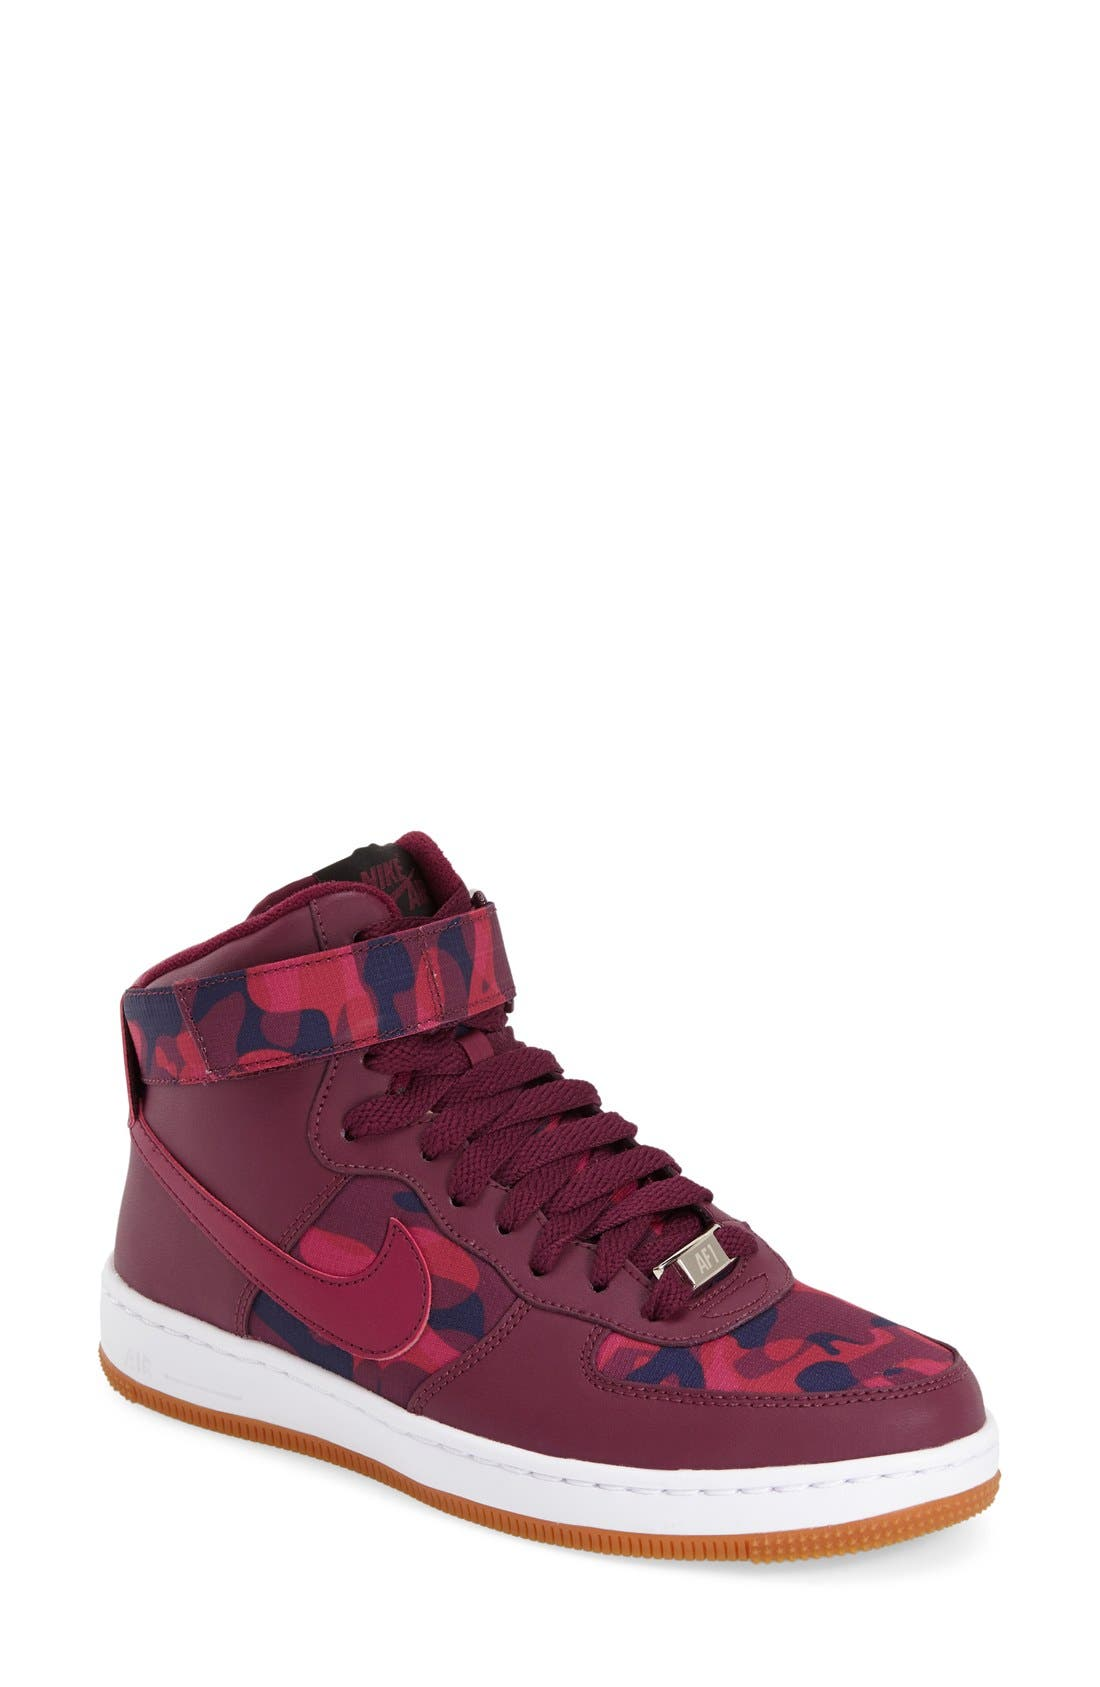 Alternate Image 1 Selected - Nike 'AF-1 Ultra Force' Sneaker (Women)